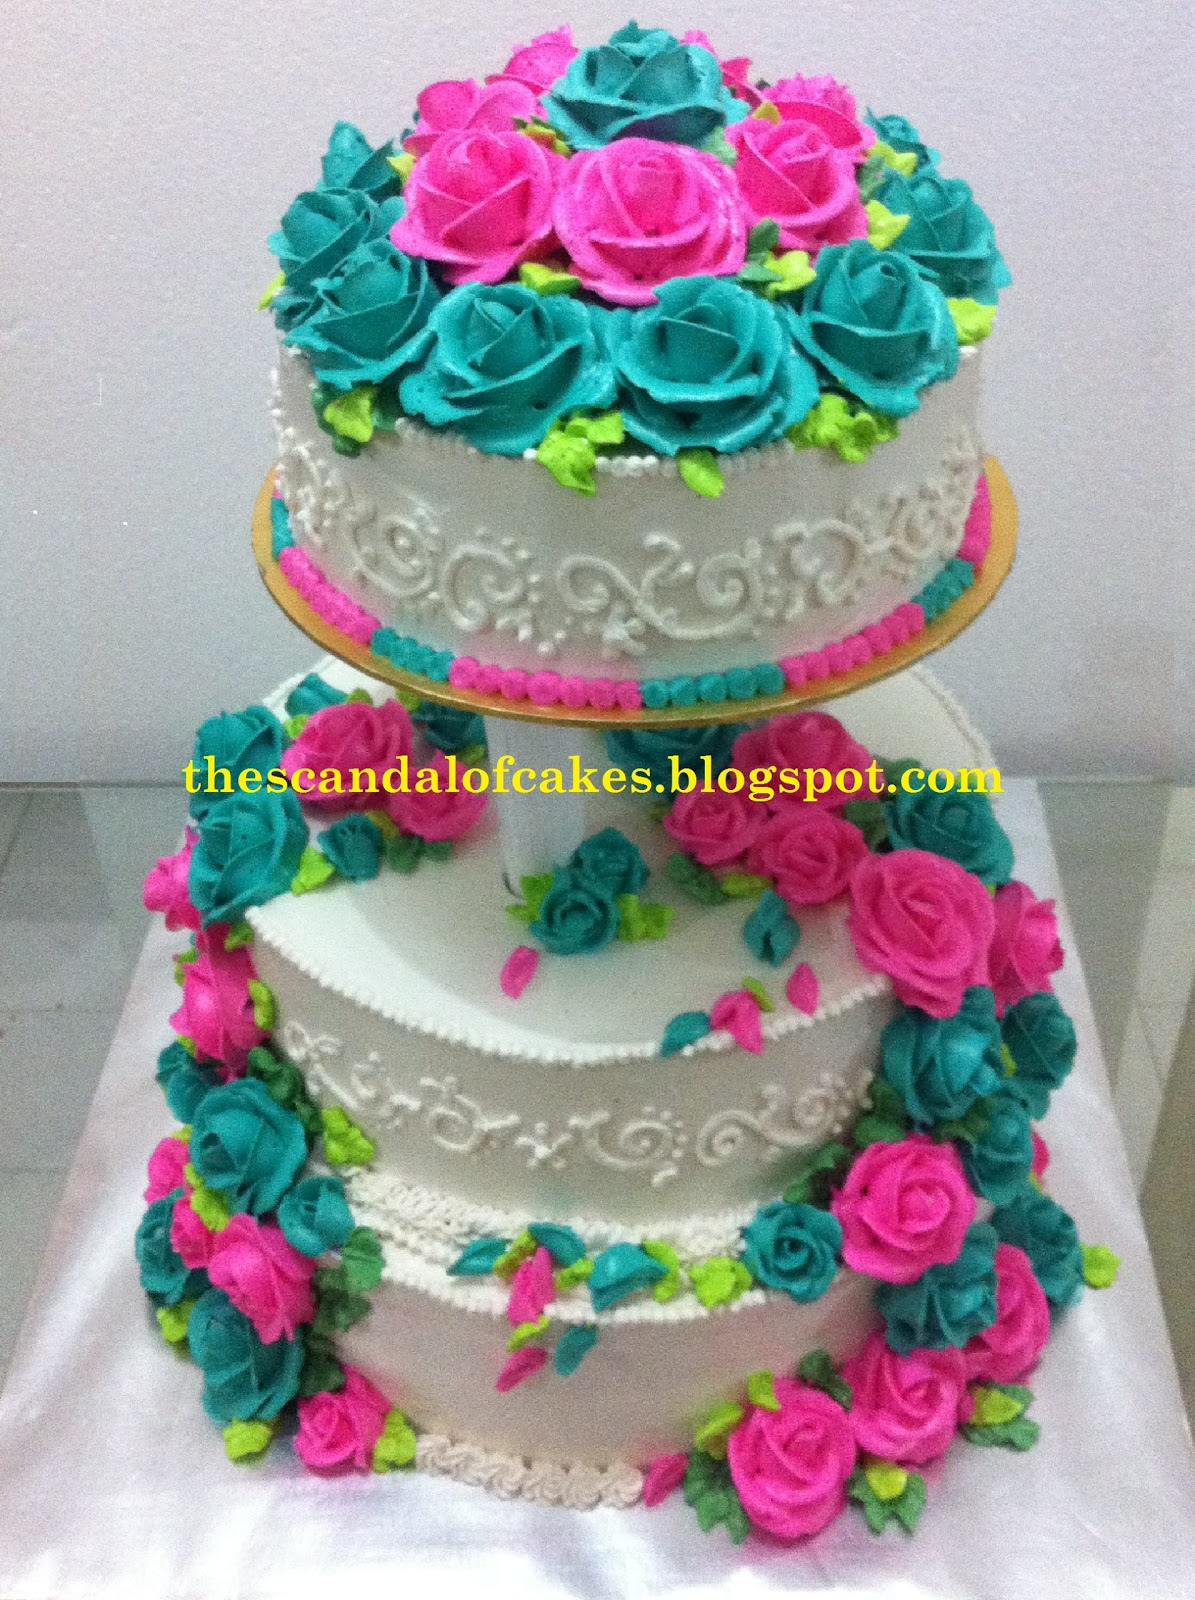 Pink & Turquoise Wedding Cake | The Scandal of Cakes